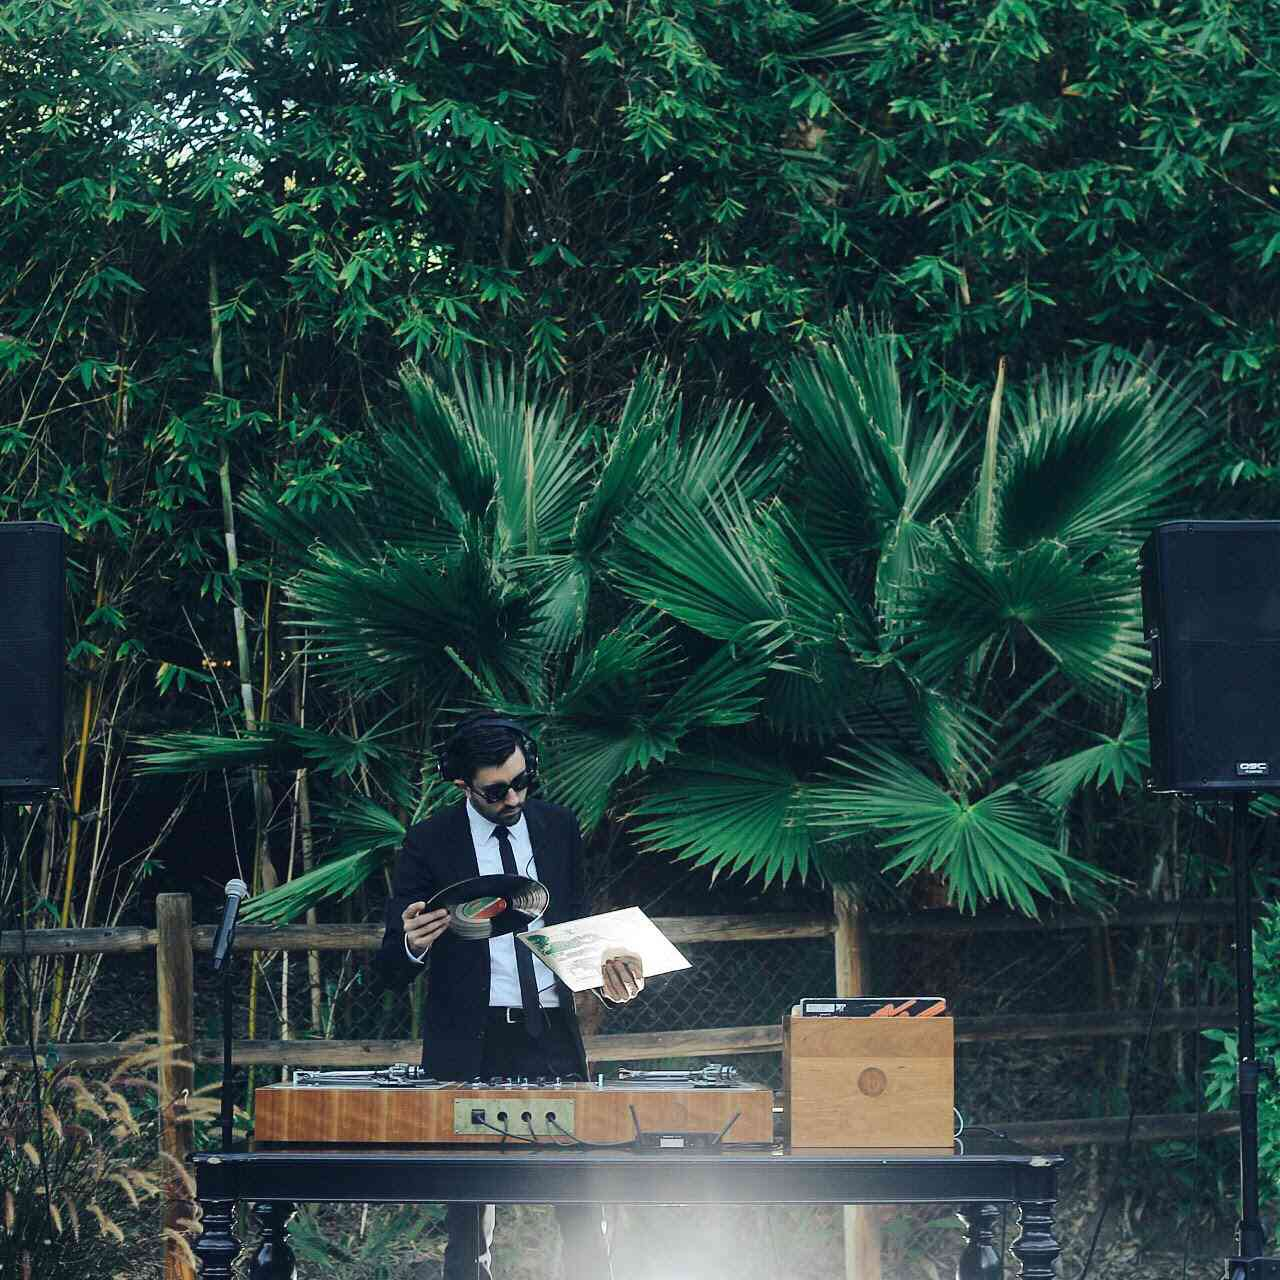 Questions To Ask Wedding Dj.50 Questions To Ask Wedding Djs And Bands